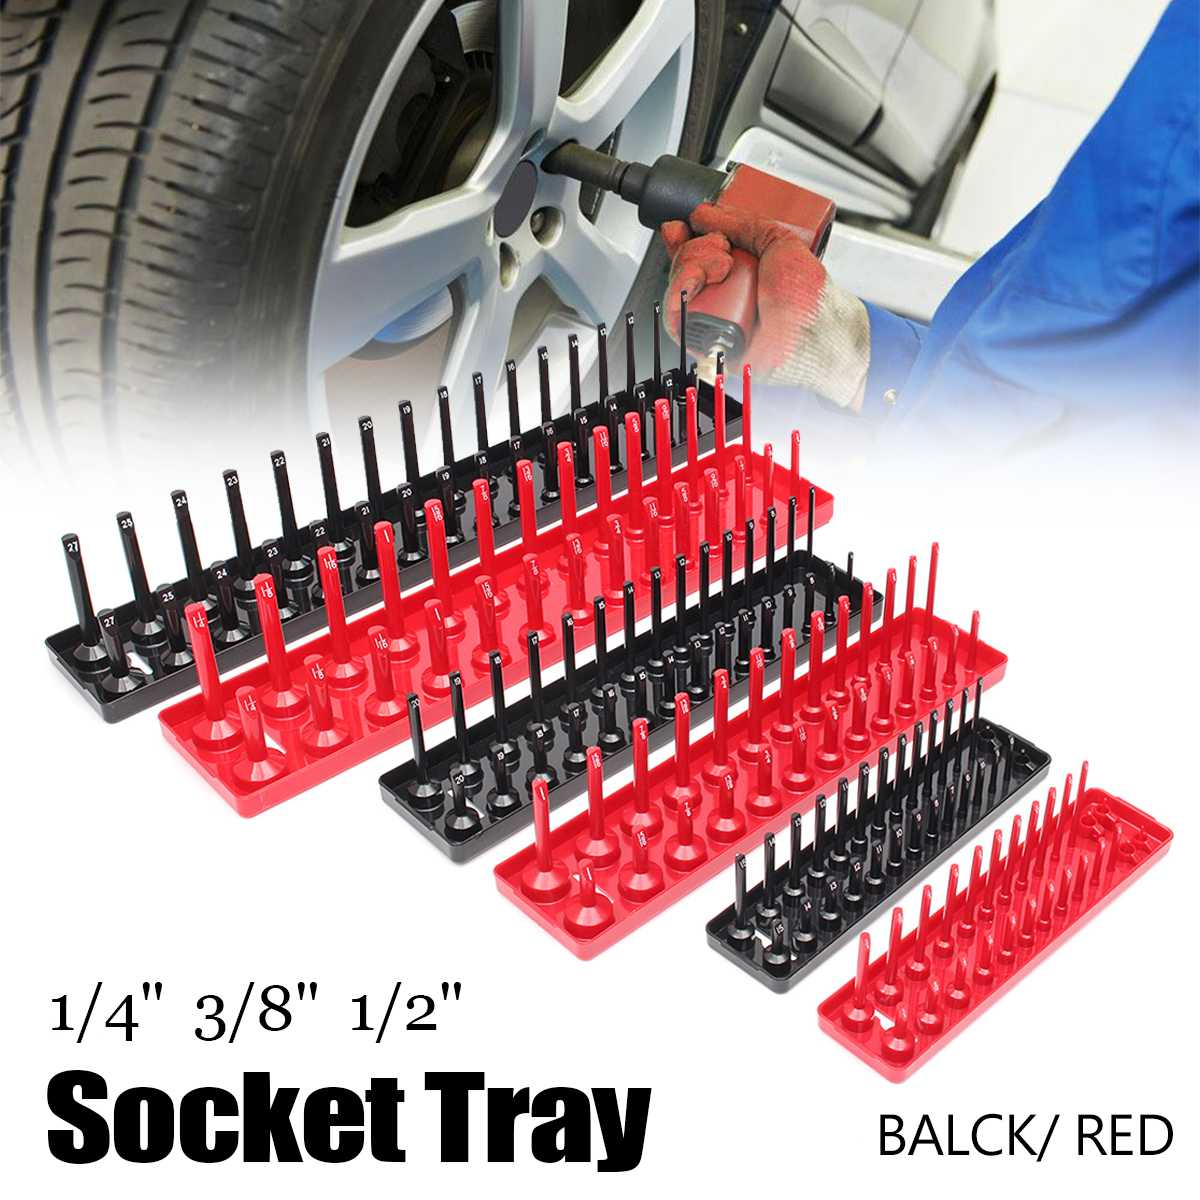 Home, Furniture & DIY Lockable Storage Boxes 80Pcs 1/2 3/8 1/4 Drive Magnetic Sockets Holder Organizer Tray Rail Rack Tool